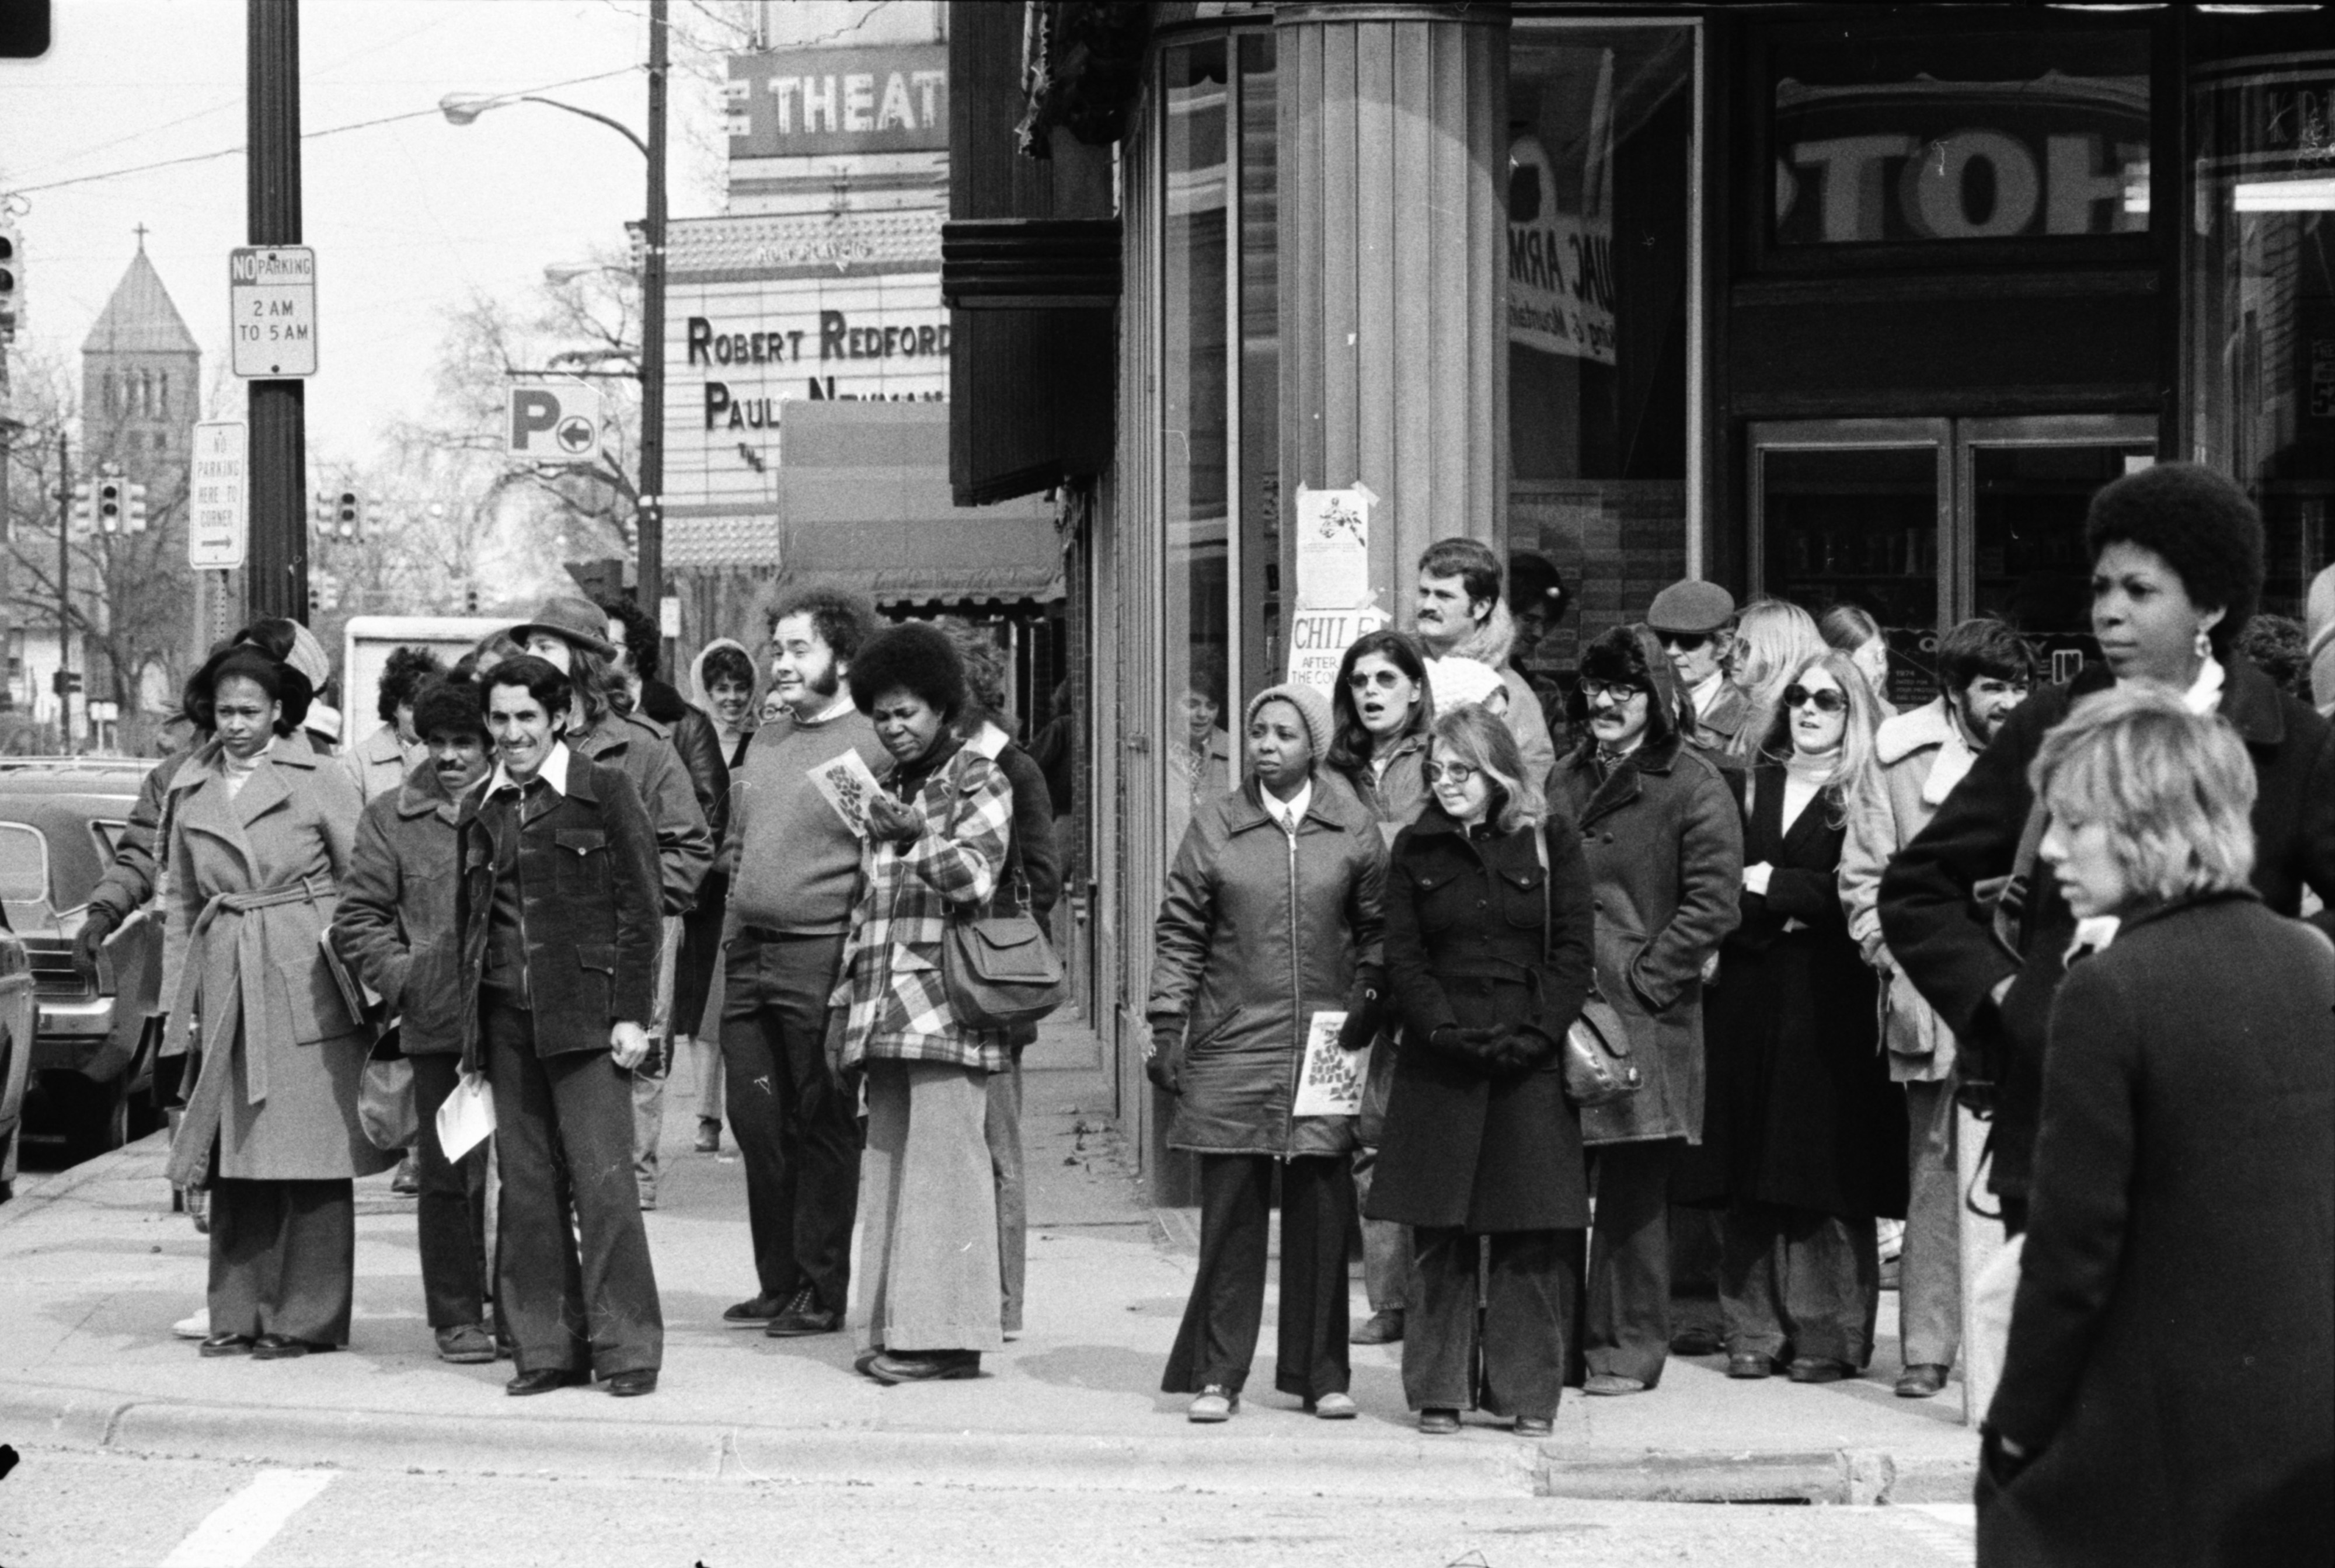 Passersby on the corner of North University Avenue and State Street watch streakers on U-M campus, March 1974 image